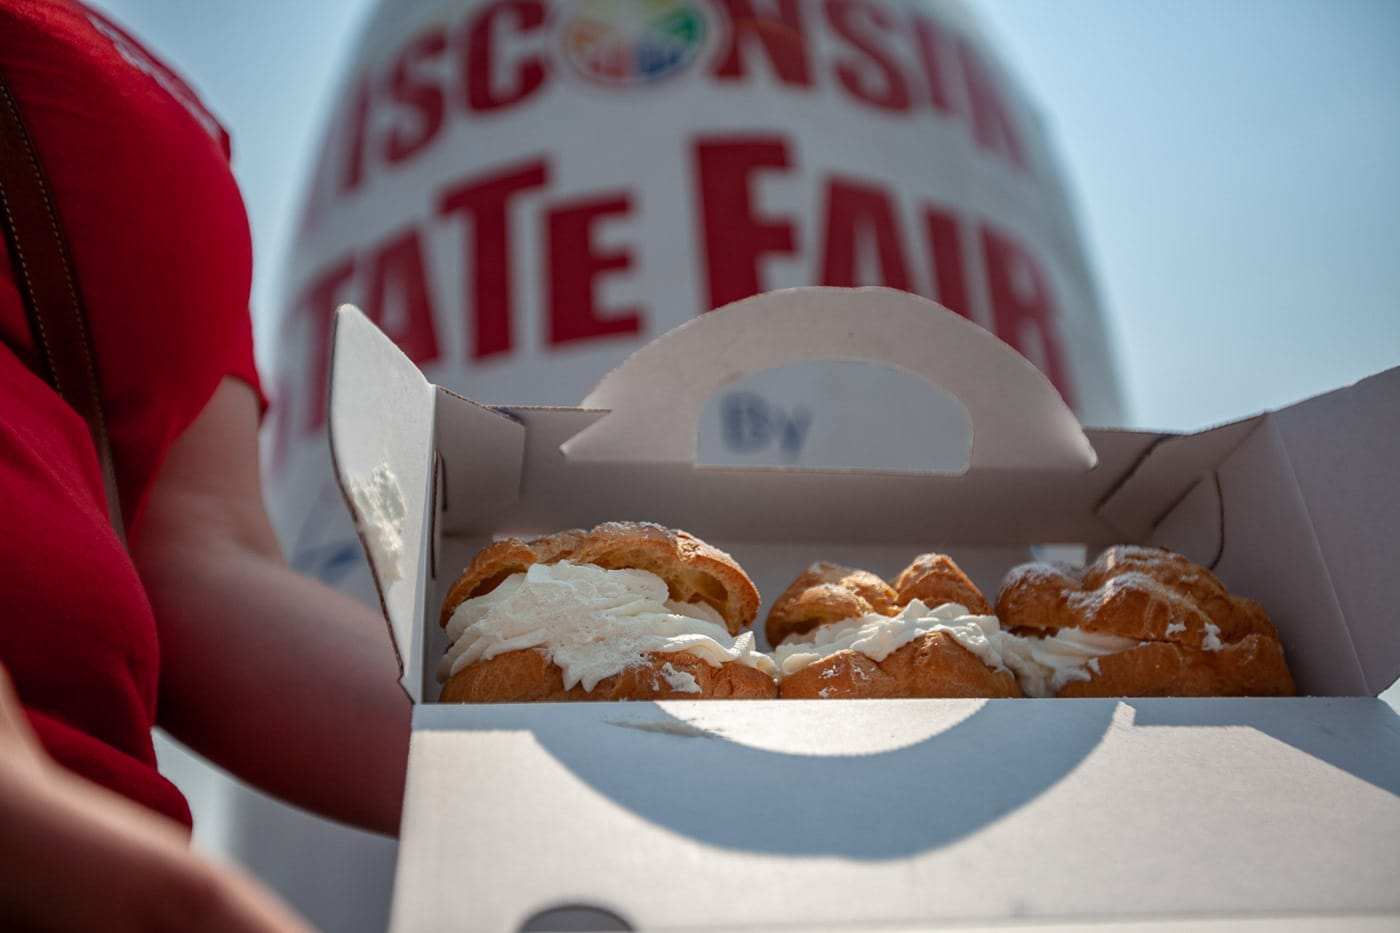 Original Cream Puff 3-pack from Original Cream Puffs To-Go. | What to eat at the Wisconsin State Fair.